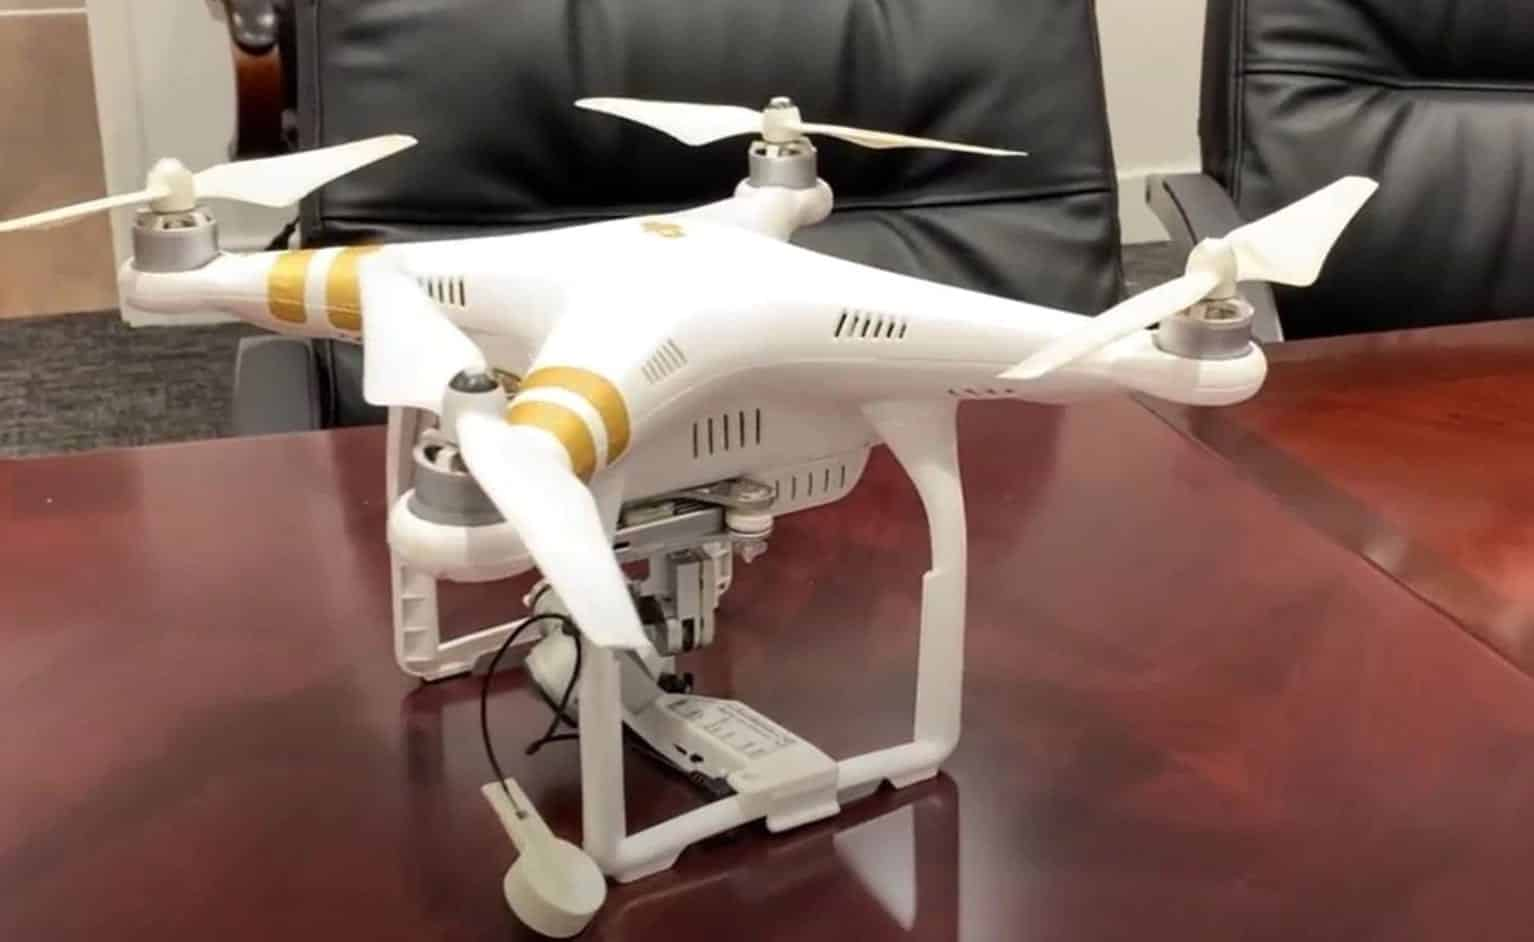 Drones used to drop contraband and surveil federal prisons - Two men arrested after trying to fly drugs into prison with DJI Phantom 3 drone